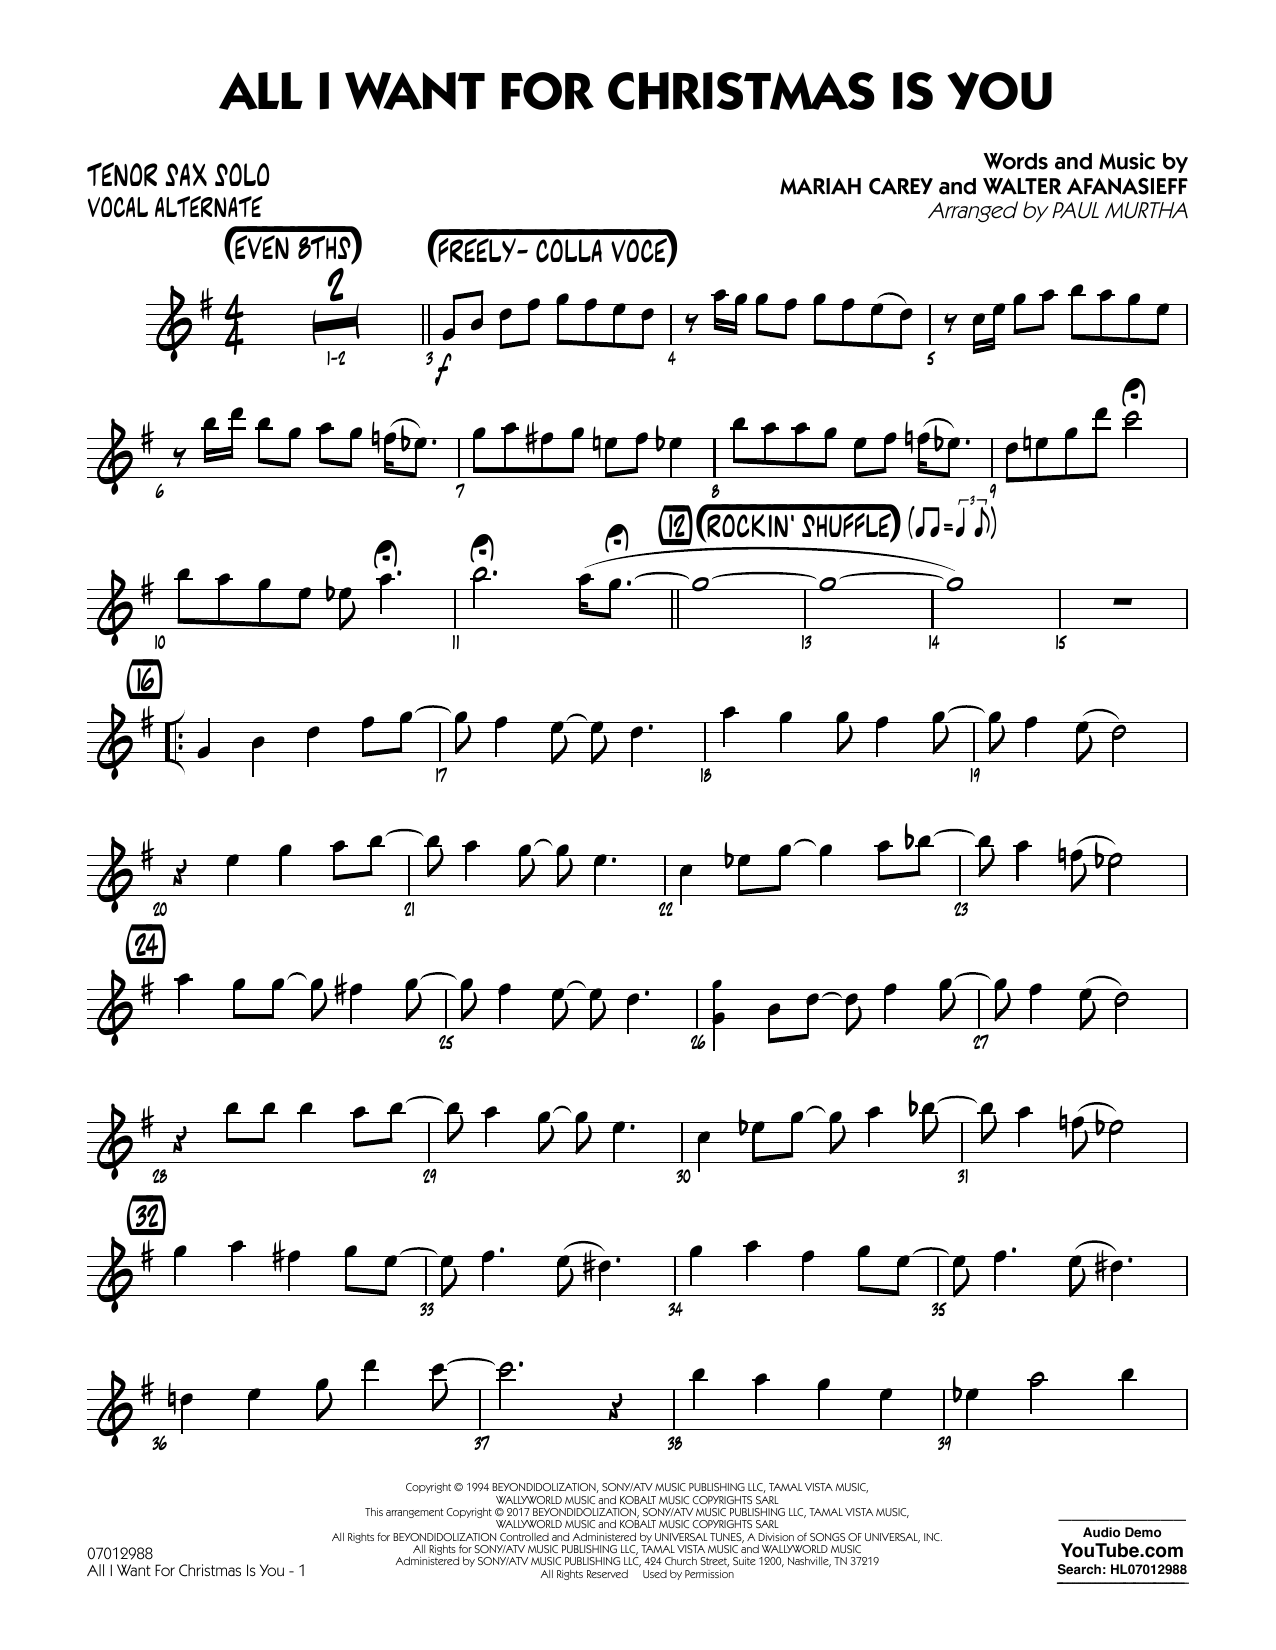 all i want for christmas is you tenor sax solo vocal alt sheet music to download - All I Want For Christmas Is You Youtube